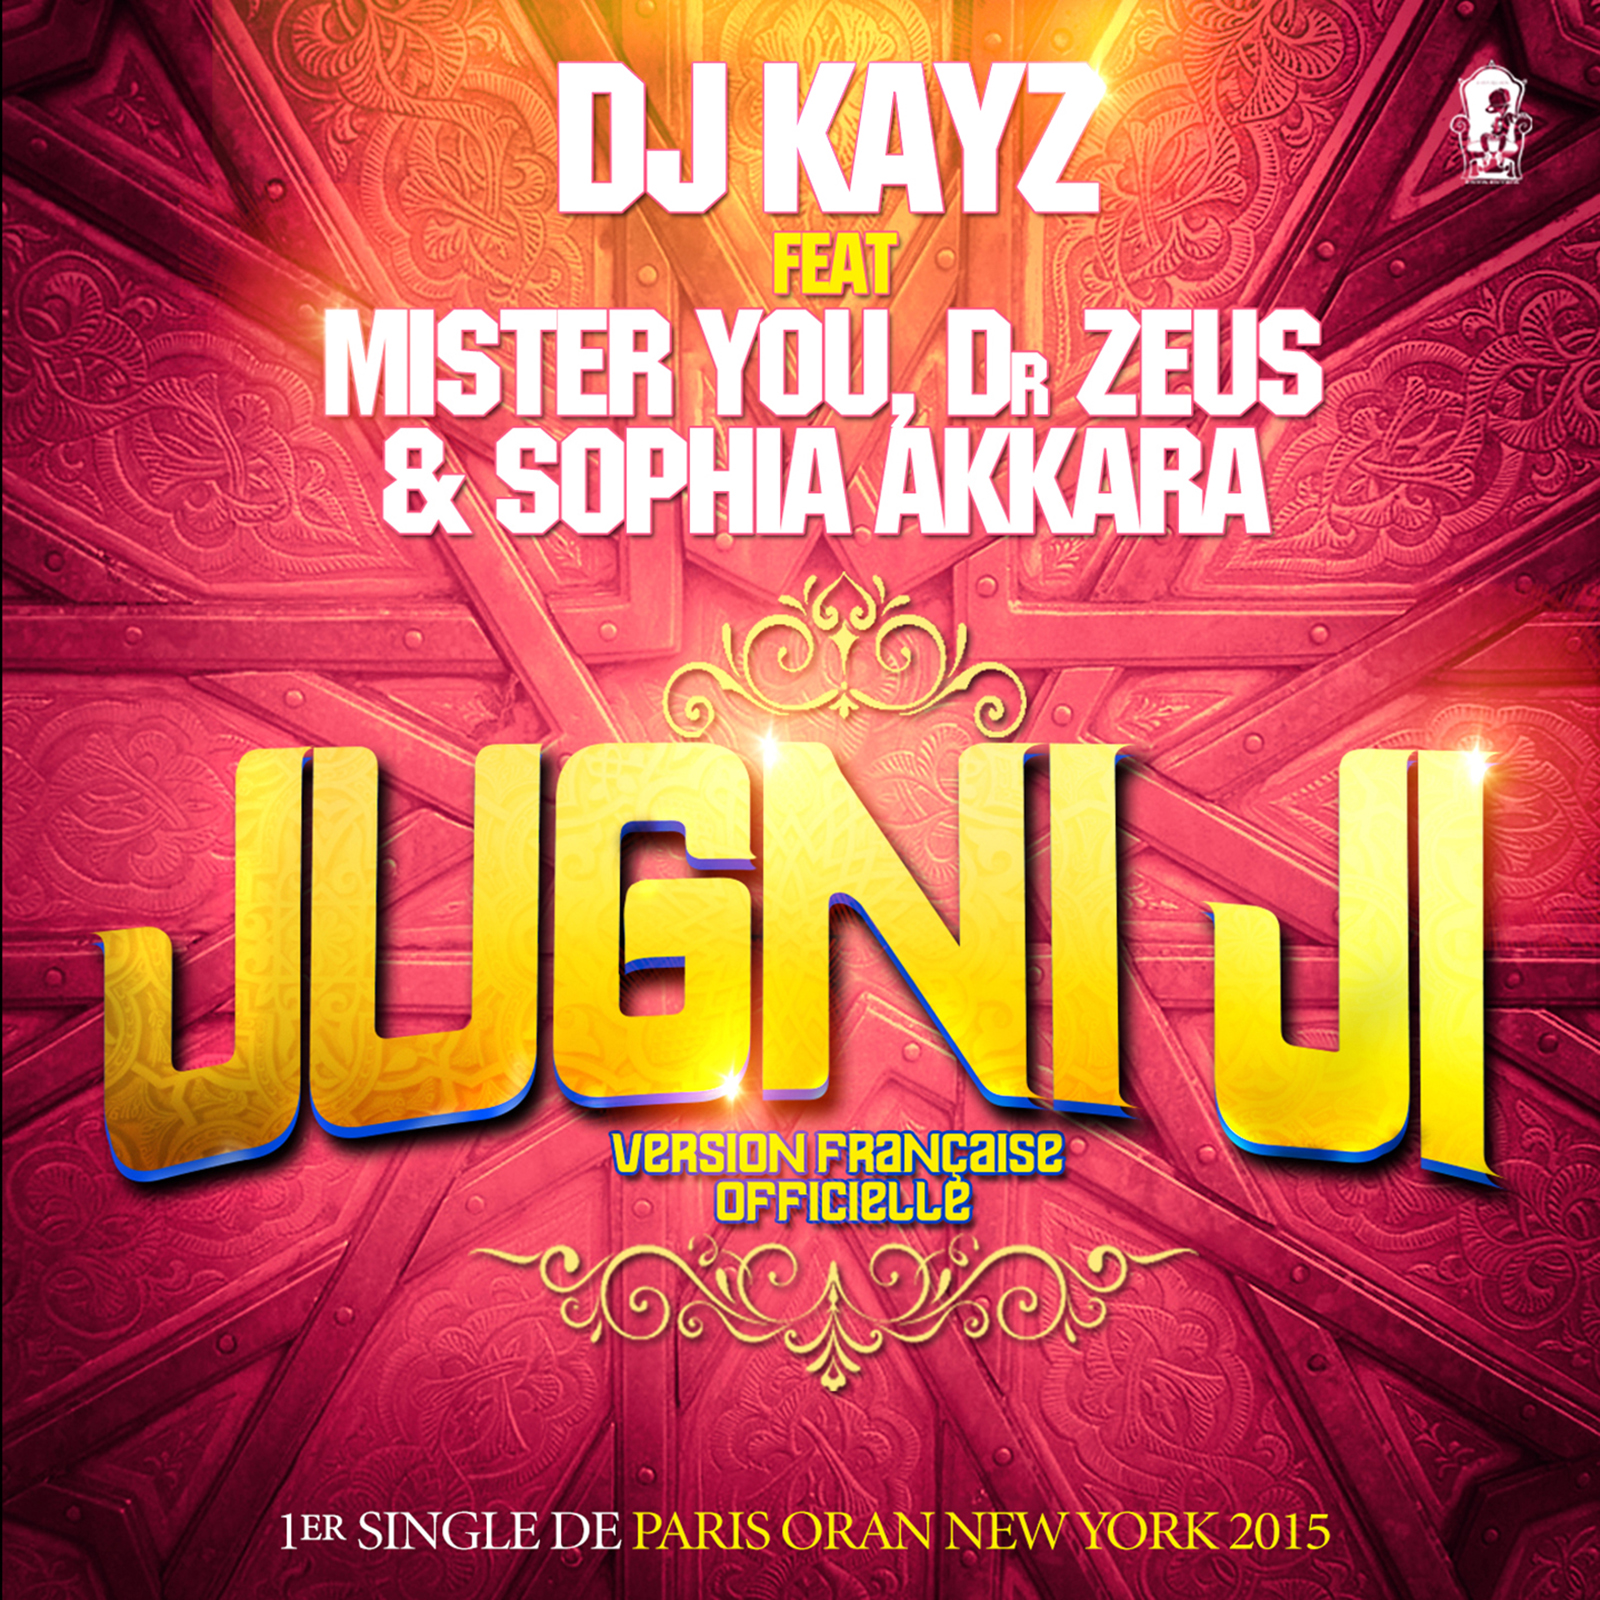 single dj kayz jugni ji promo face